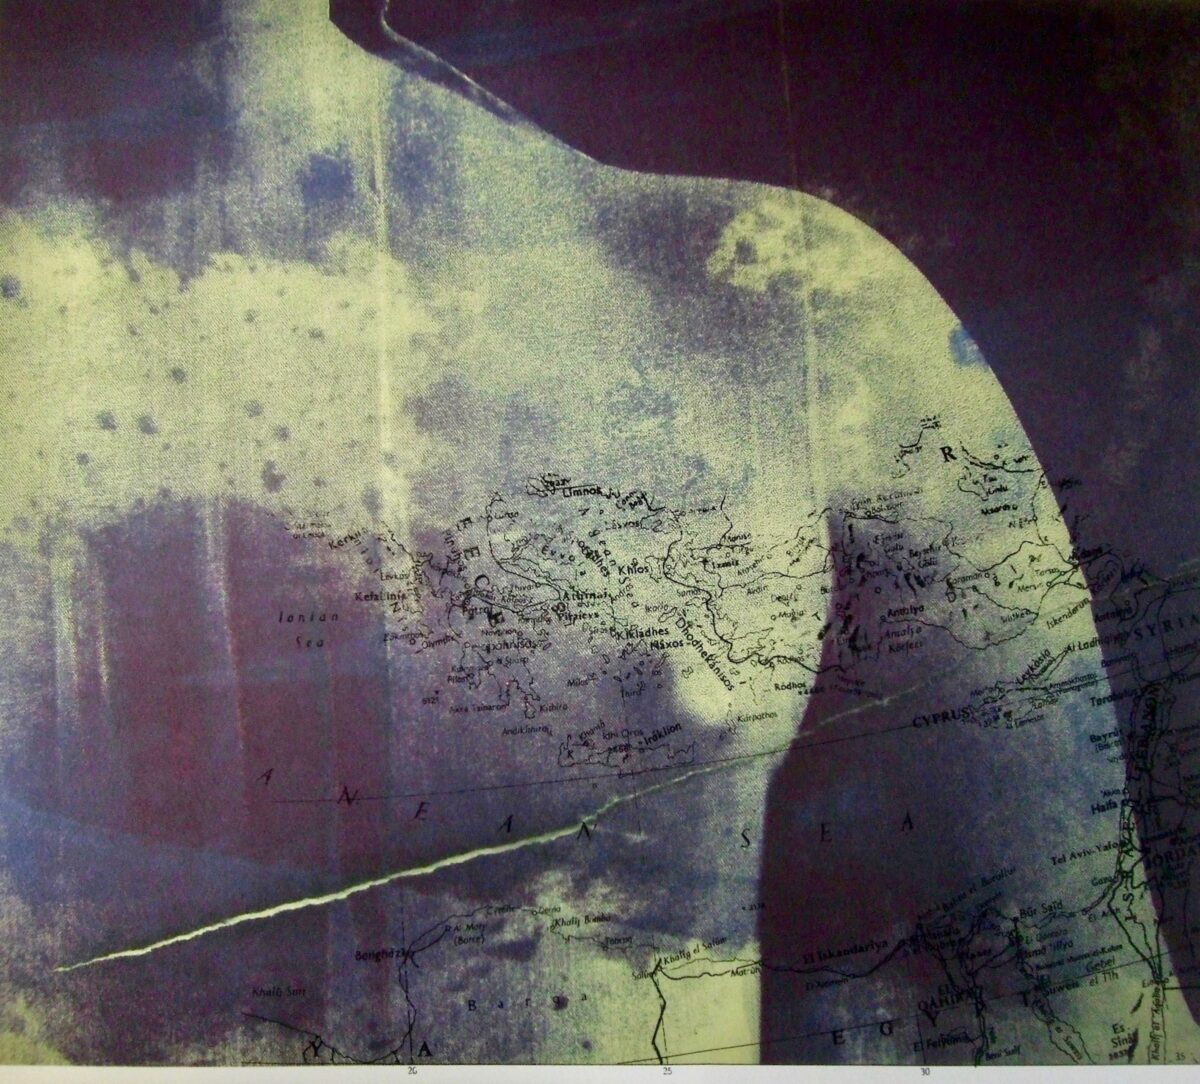 Photograph of a woman's torso with a map superimposed onto it in muted blue and yellow.